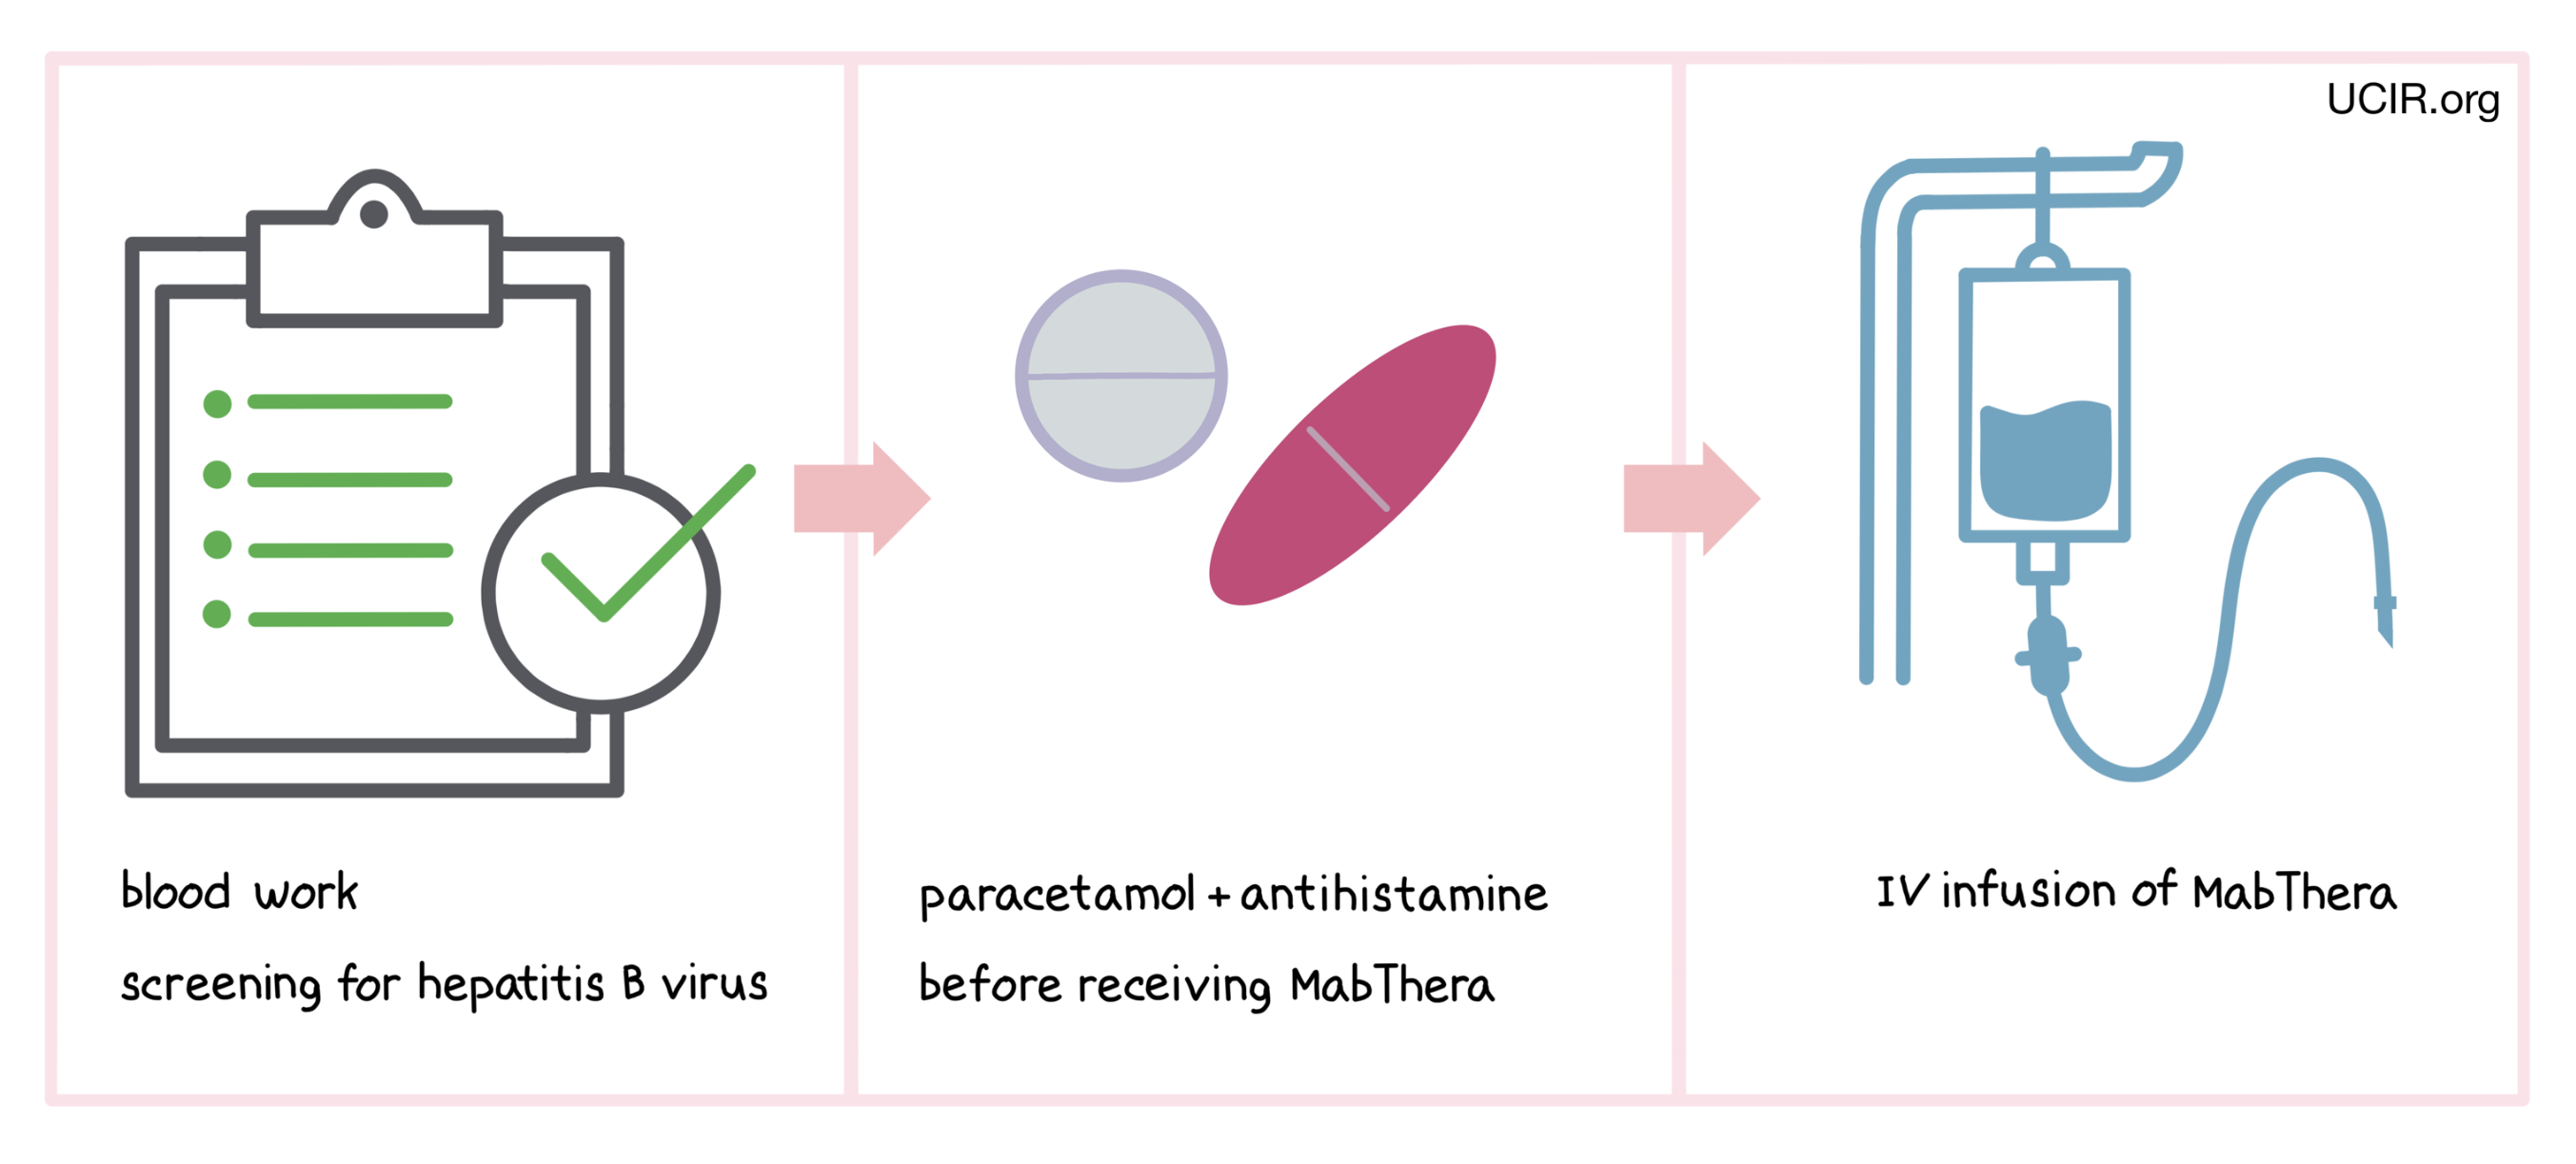 Illustration showing how MabThera is administered to patients